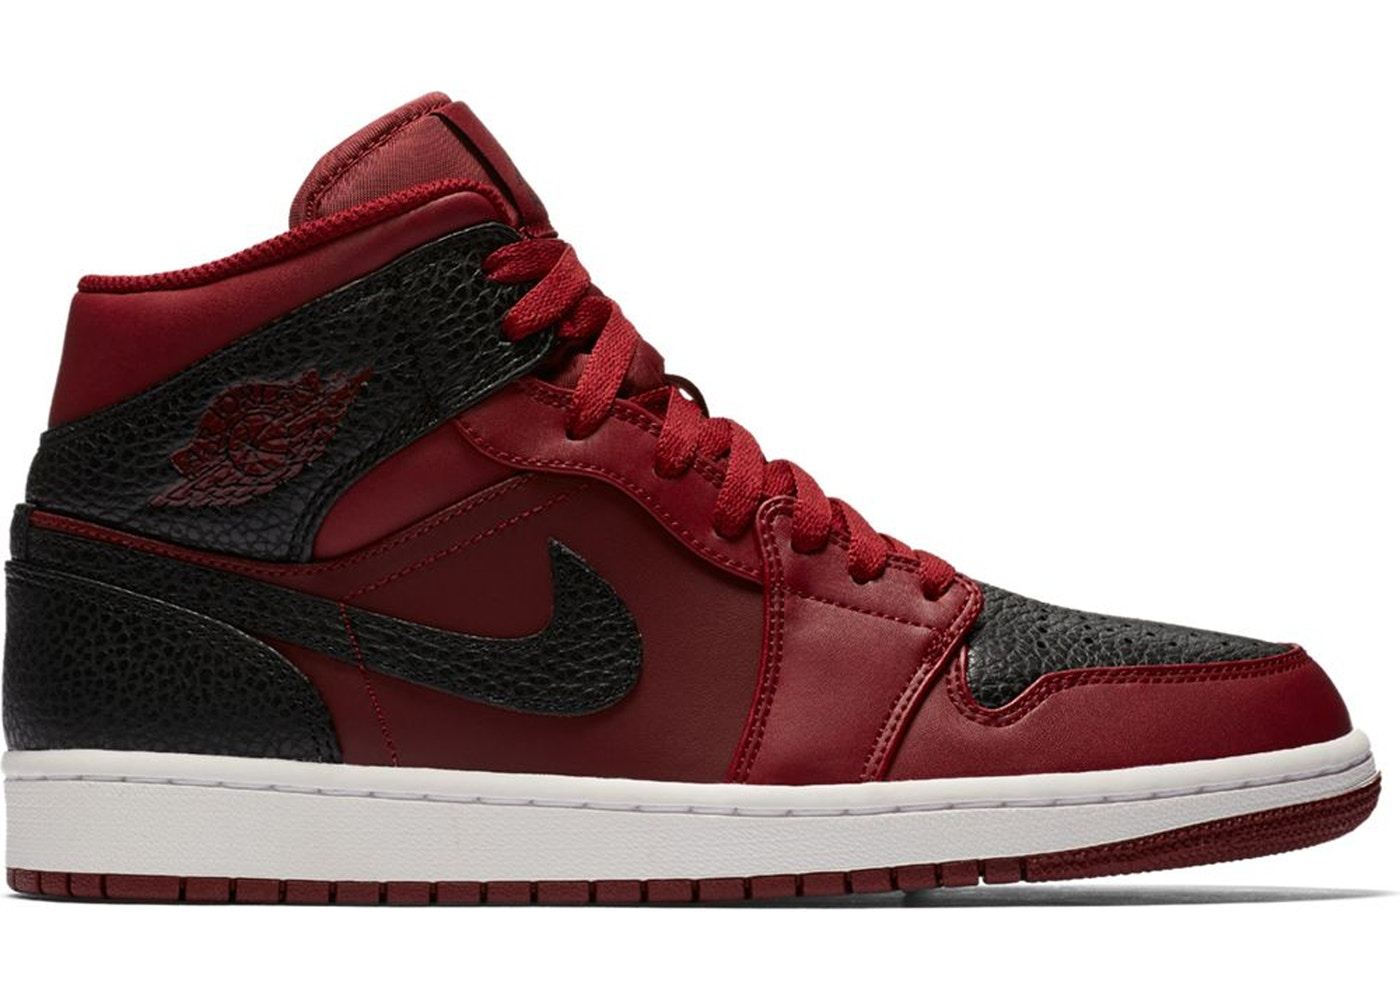 49989d6918d4 Jordan 1 Retro Mid Team Red Black - 554724-601